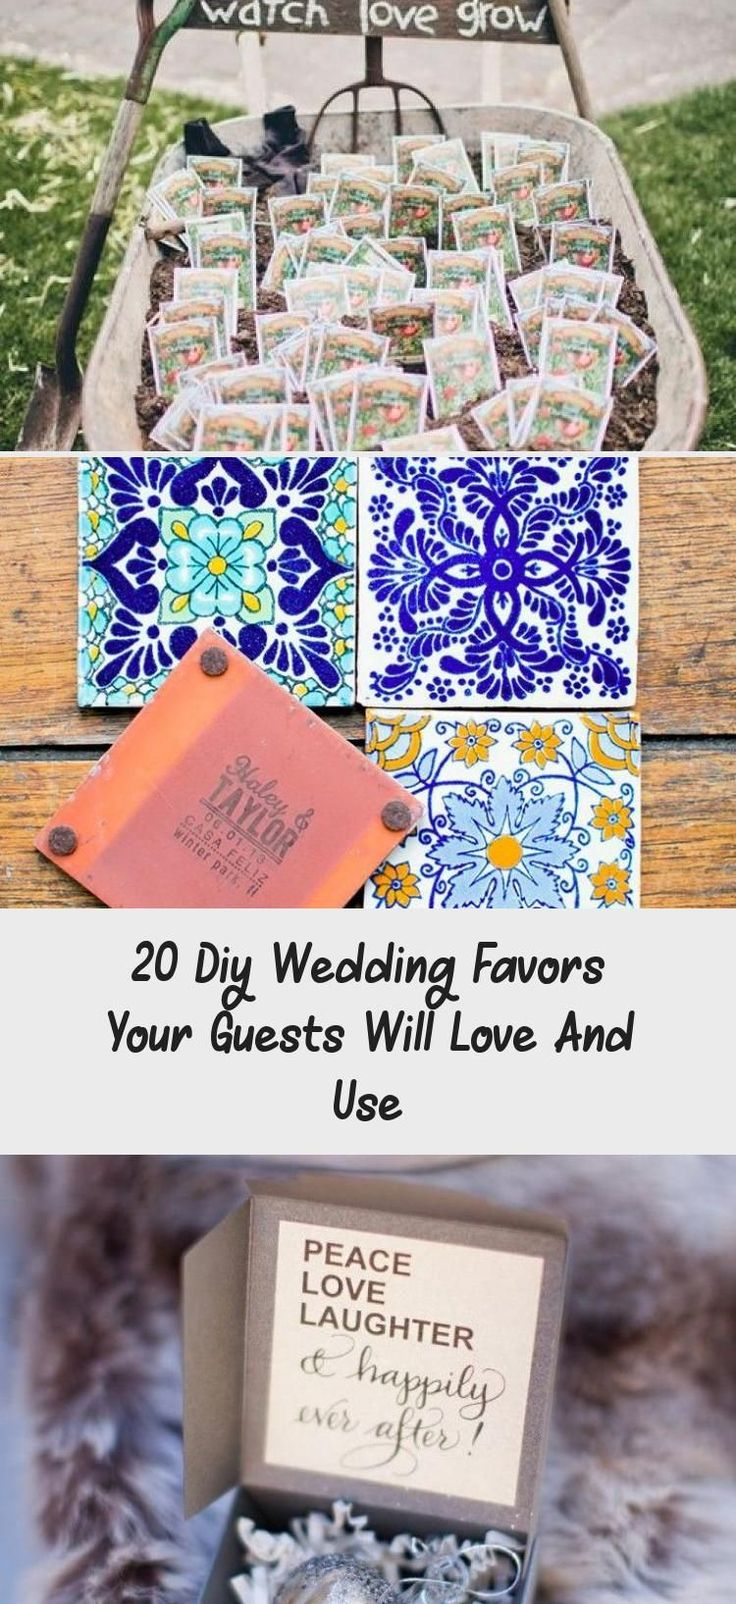 20 Diy Wedding Favors Your Guests Will Love And Use - Pinokyo#diy #favors #guests #love #pinokyo #wedding